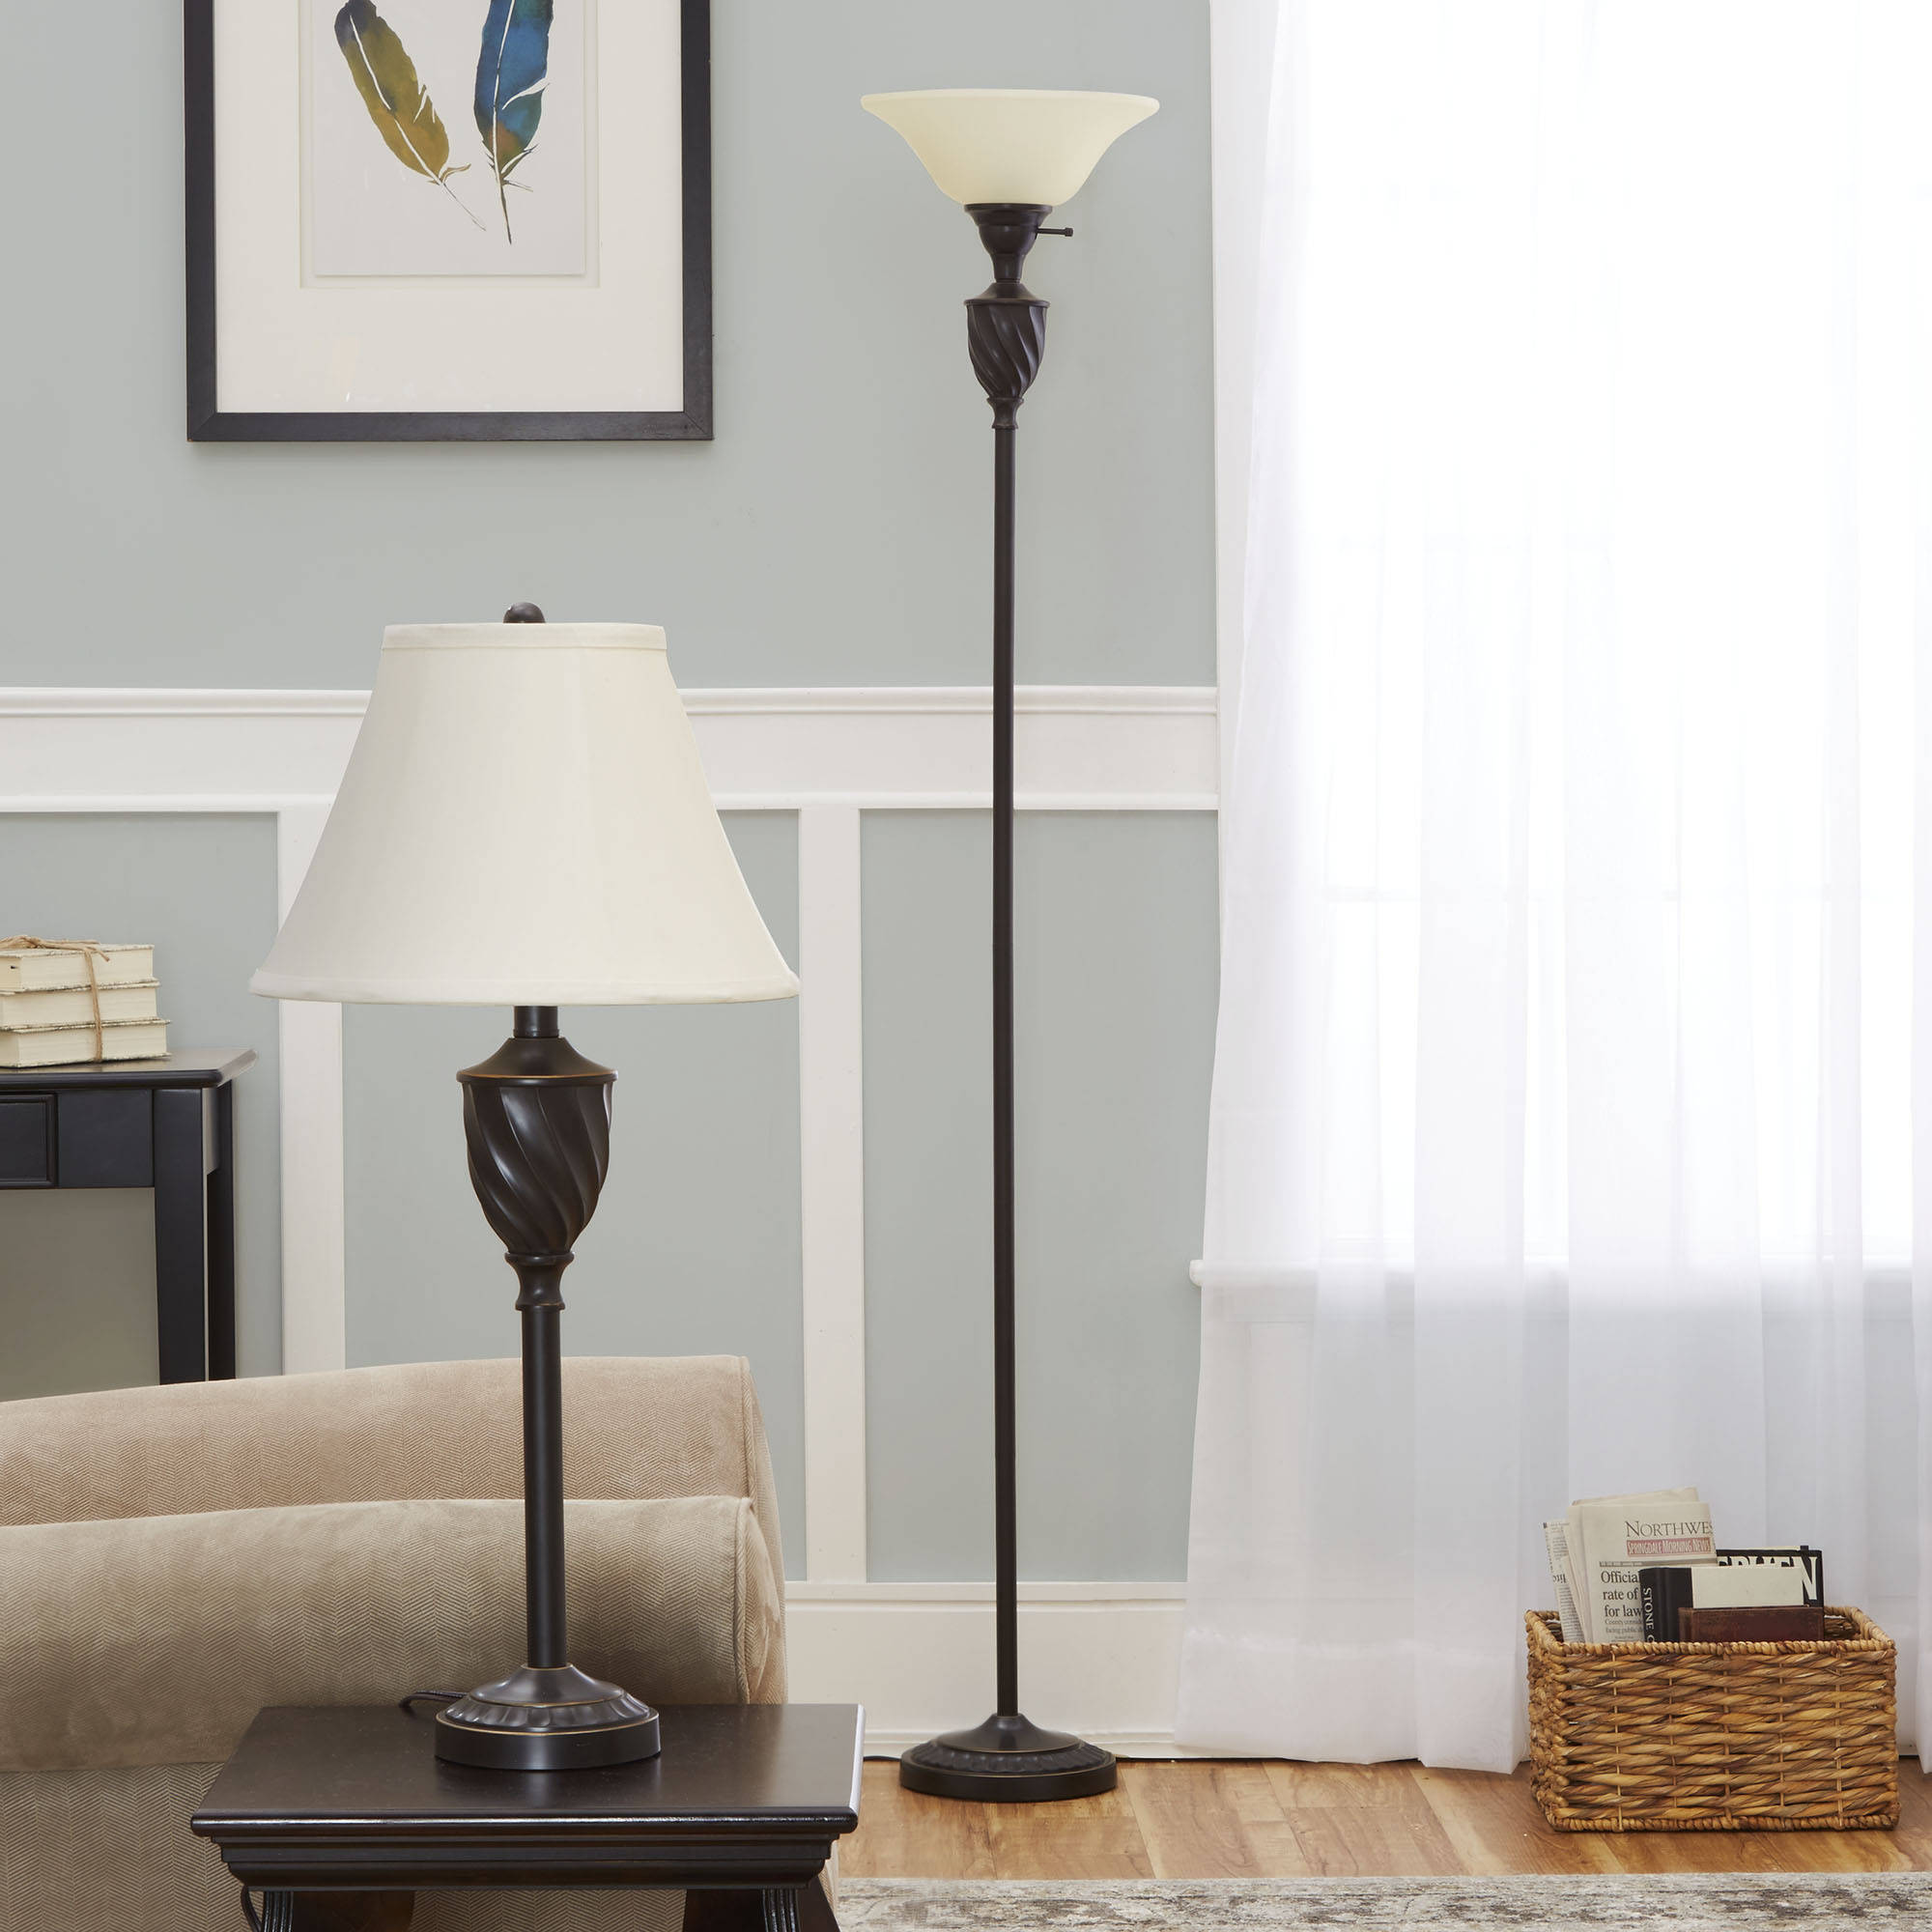 Mainstays table and floor lamp set oil rubbed bronze finish mainstays table and floor lamp set oil rubbed bronze finish walmart mozeypictures